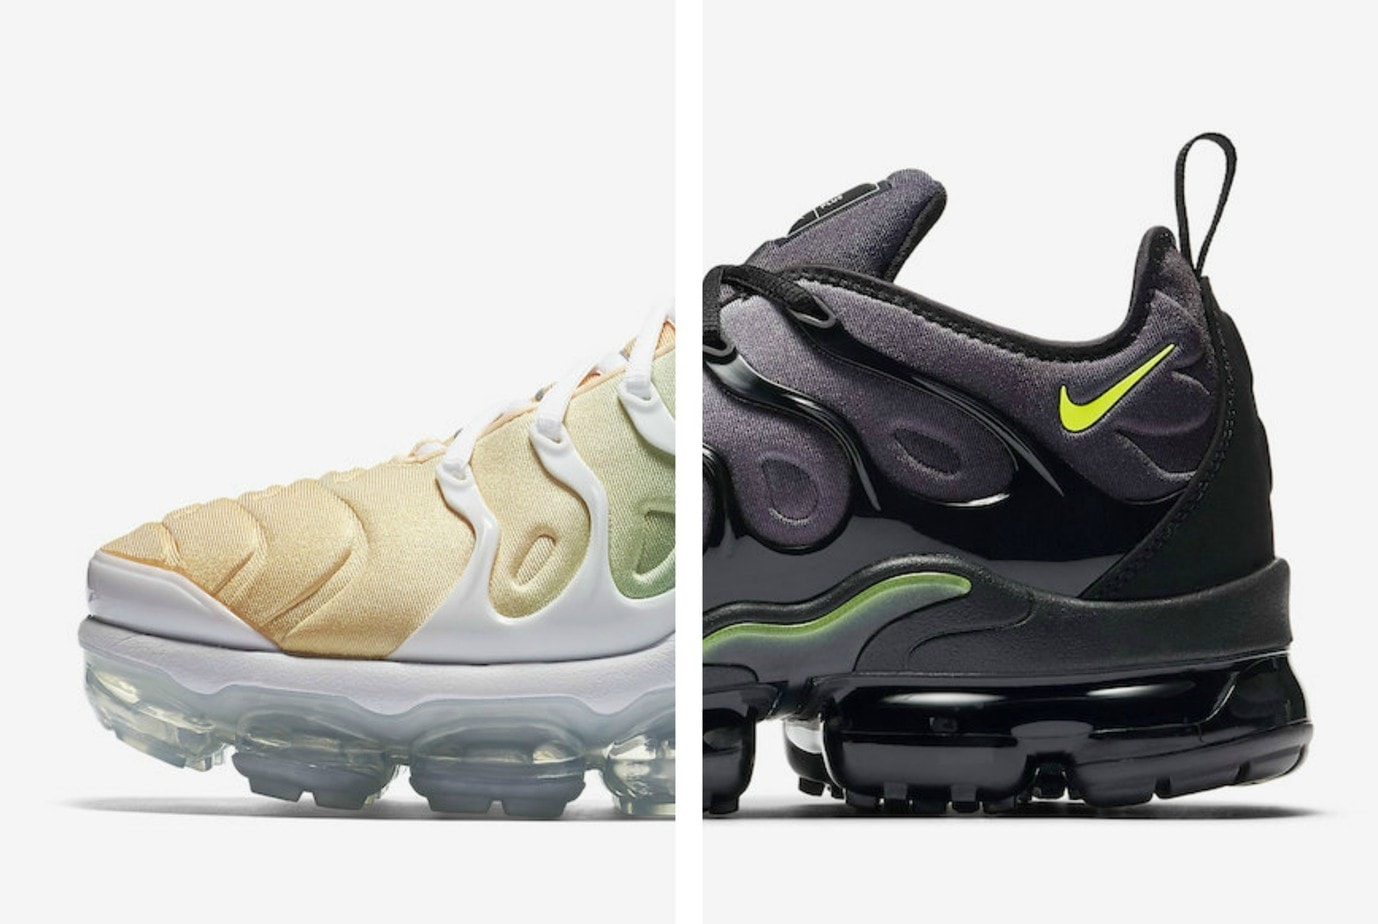 best loved 21bc4 02818 The new Nike Air Vapormax Plus first release in January of this year. The  fresh silhouette was a surprise hit, selling out at most retailers.